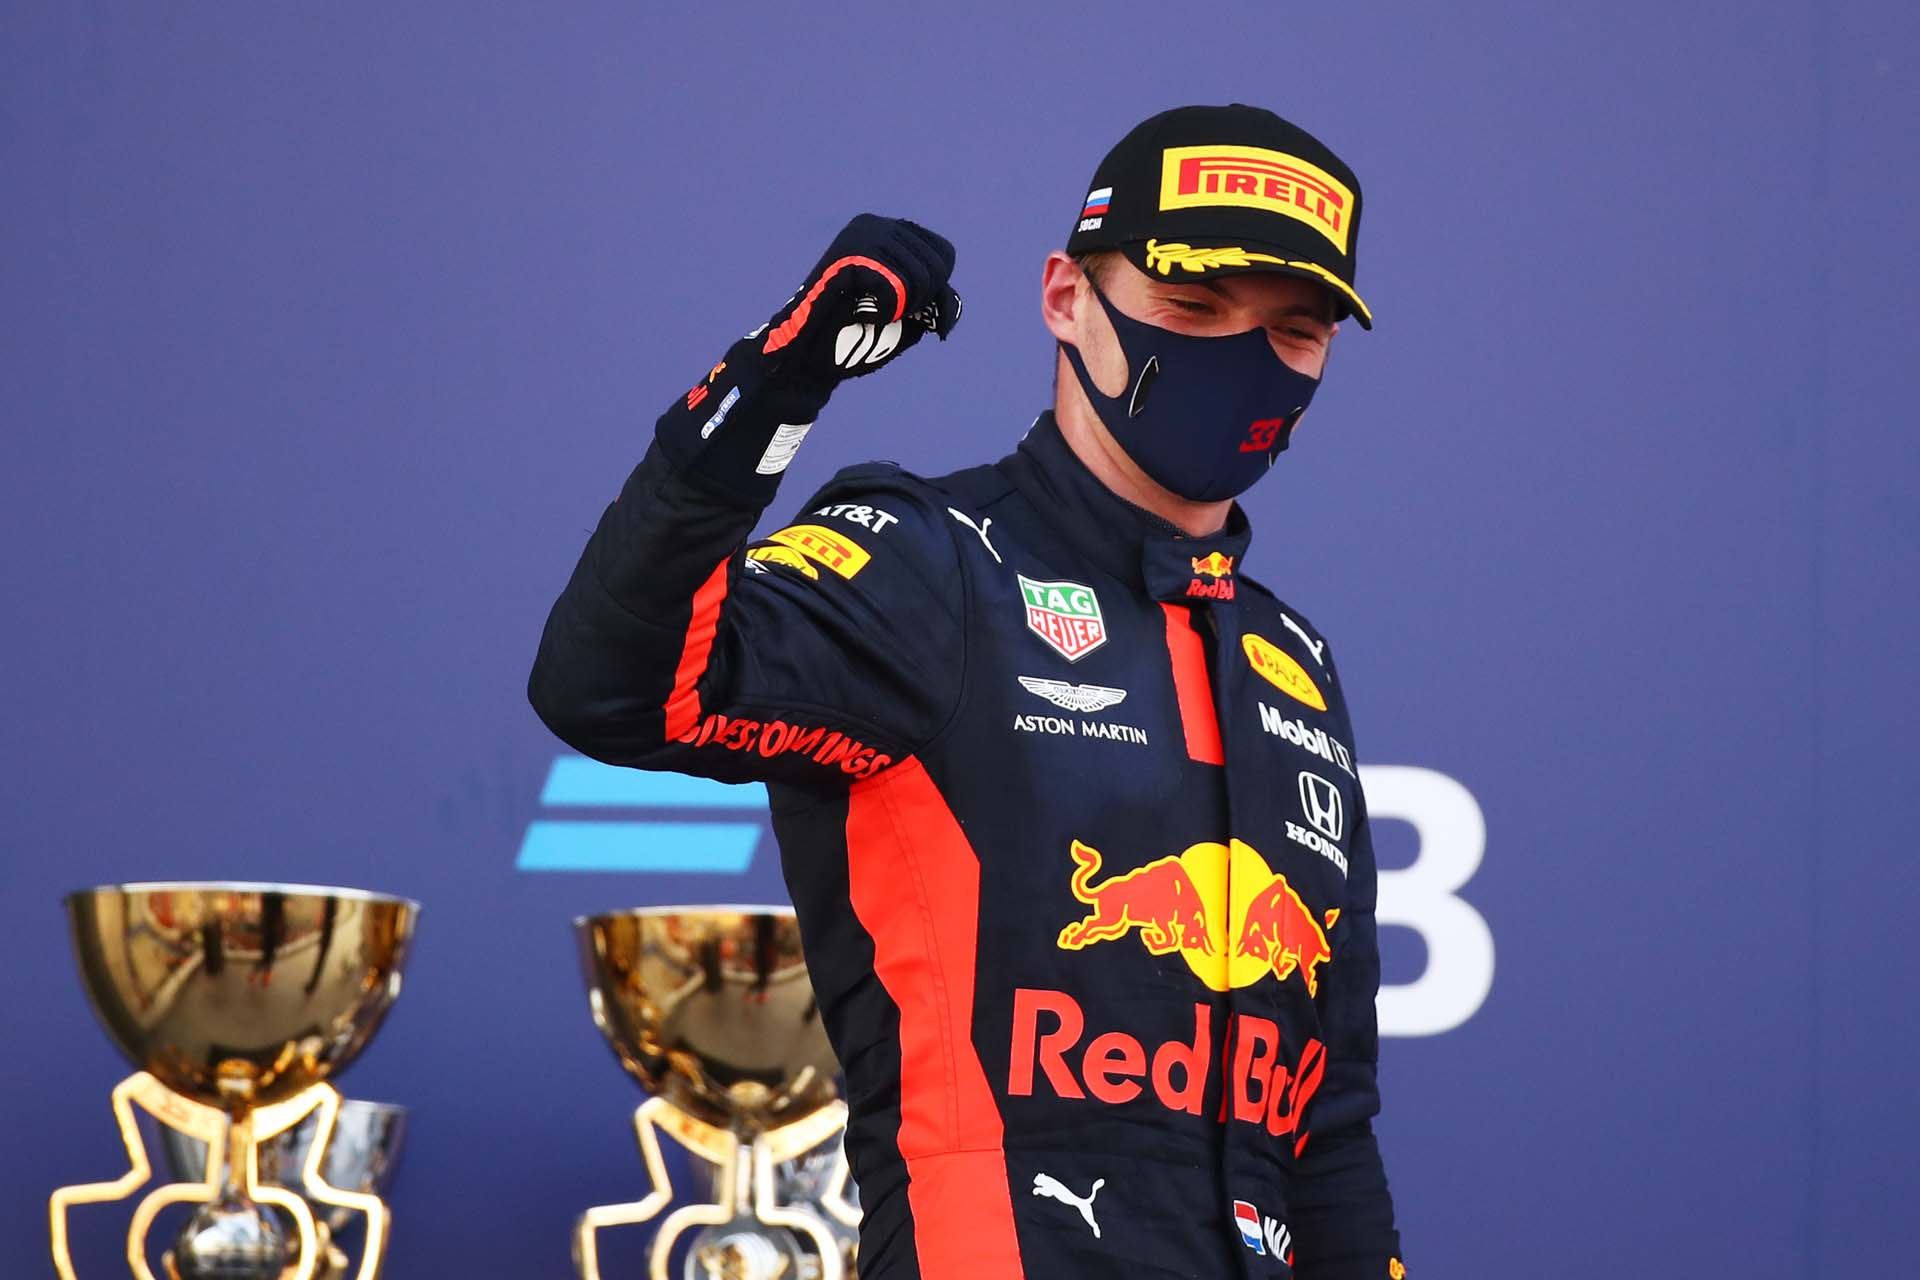 F1 Grand Prix of Russia